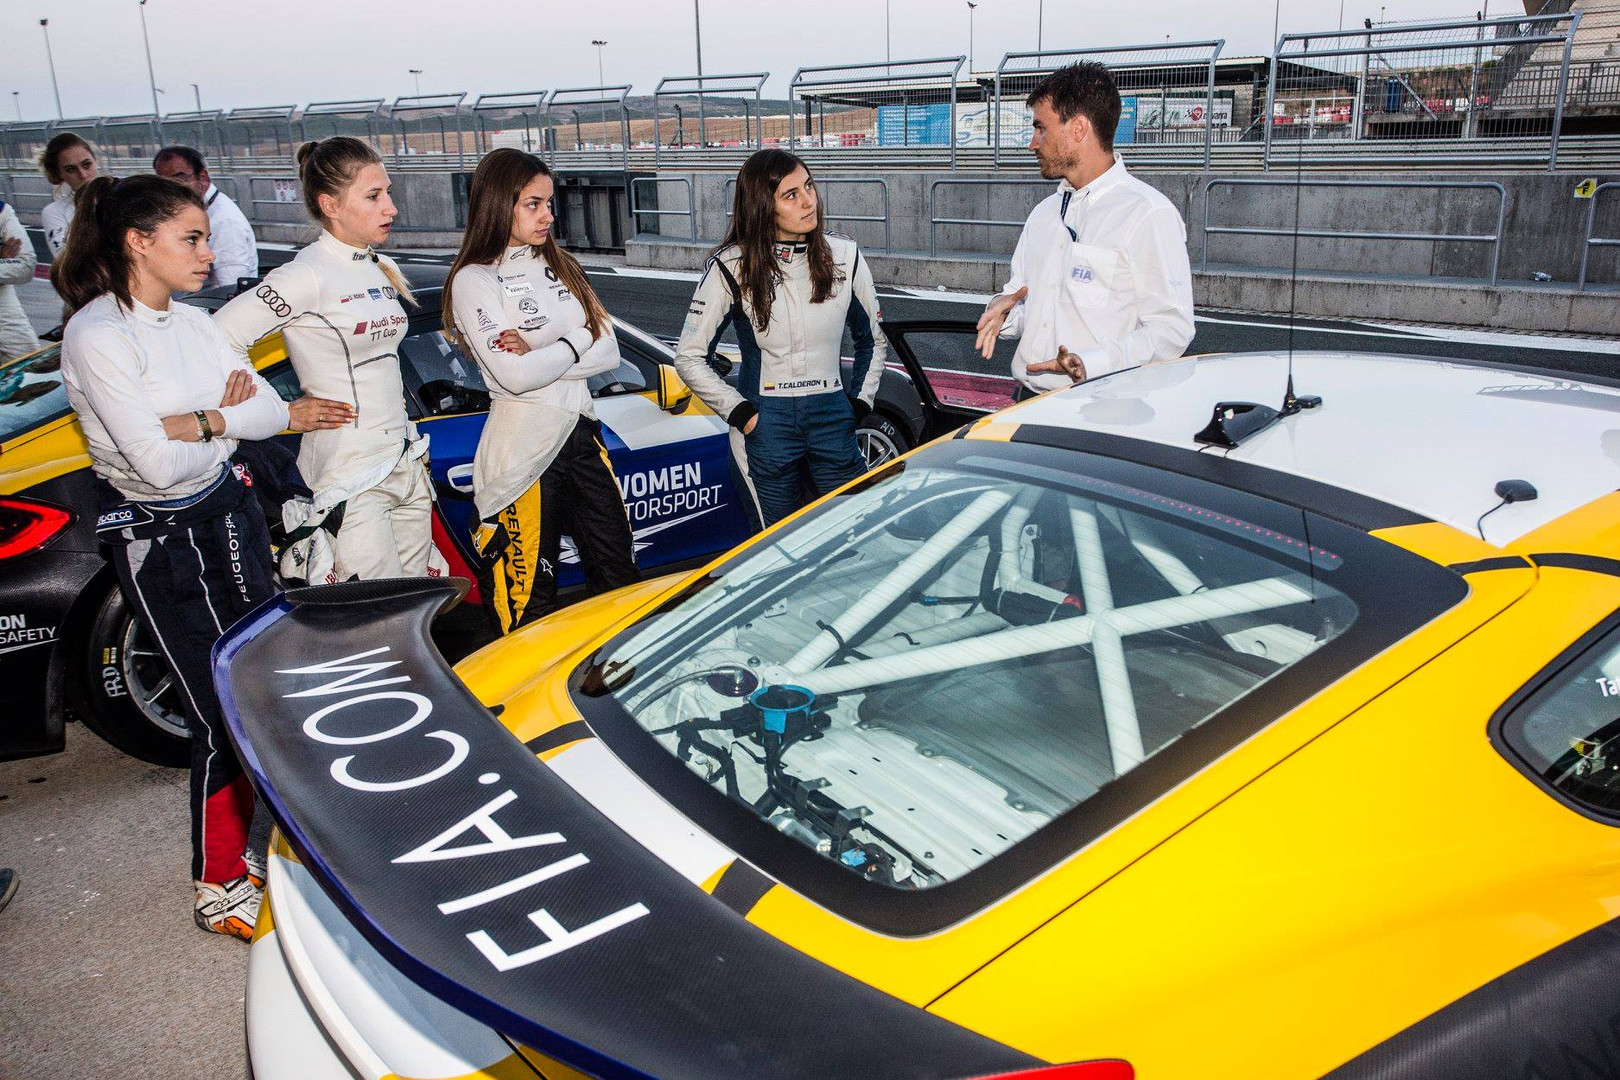 Participation en tant qu'ingénieur/coach data au programme FIA Women in Motorsport 2018